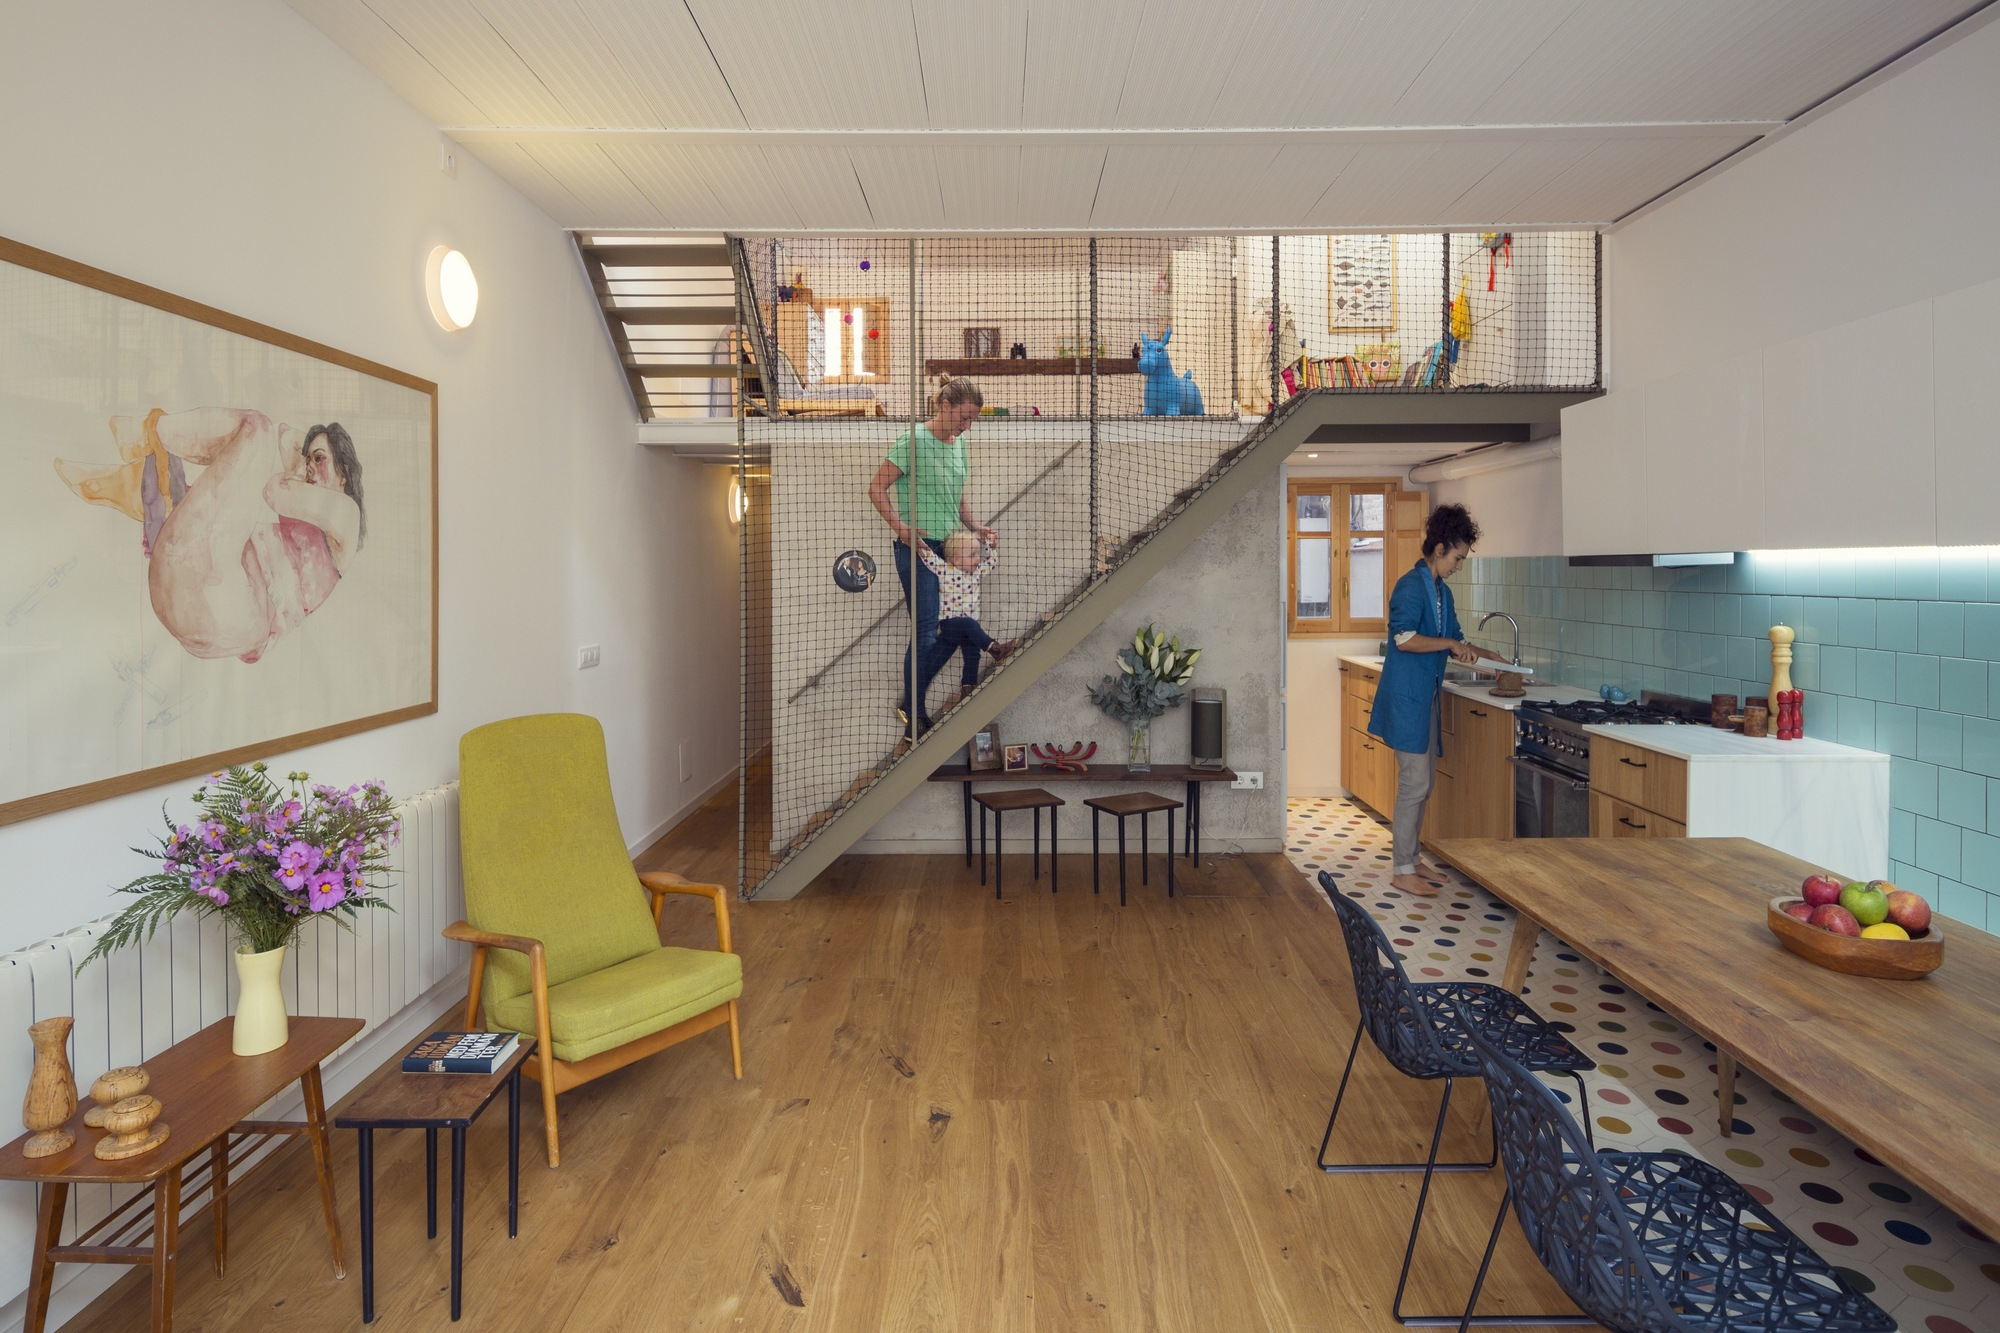 Junos House Nook Architects ArchDaily